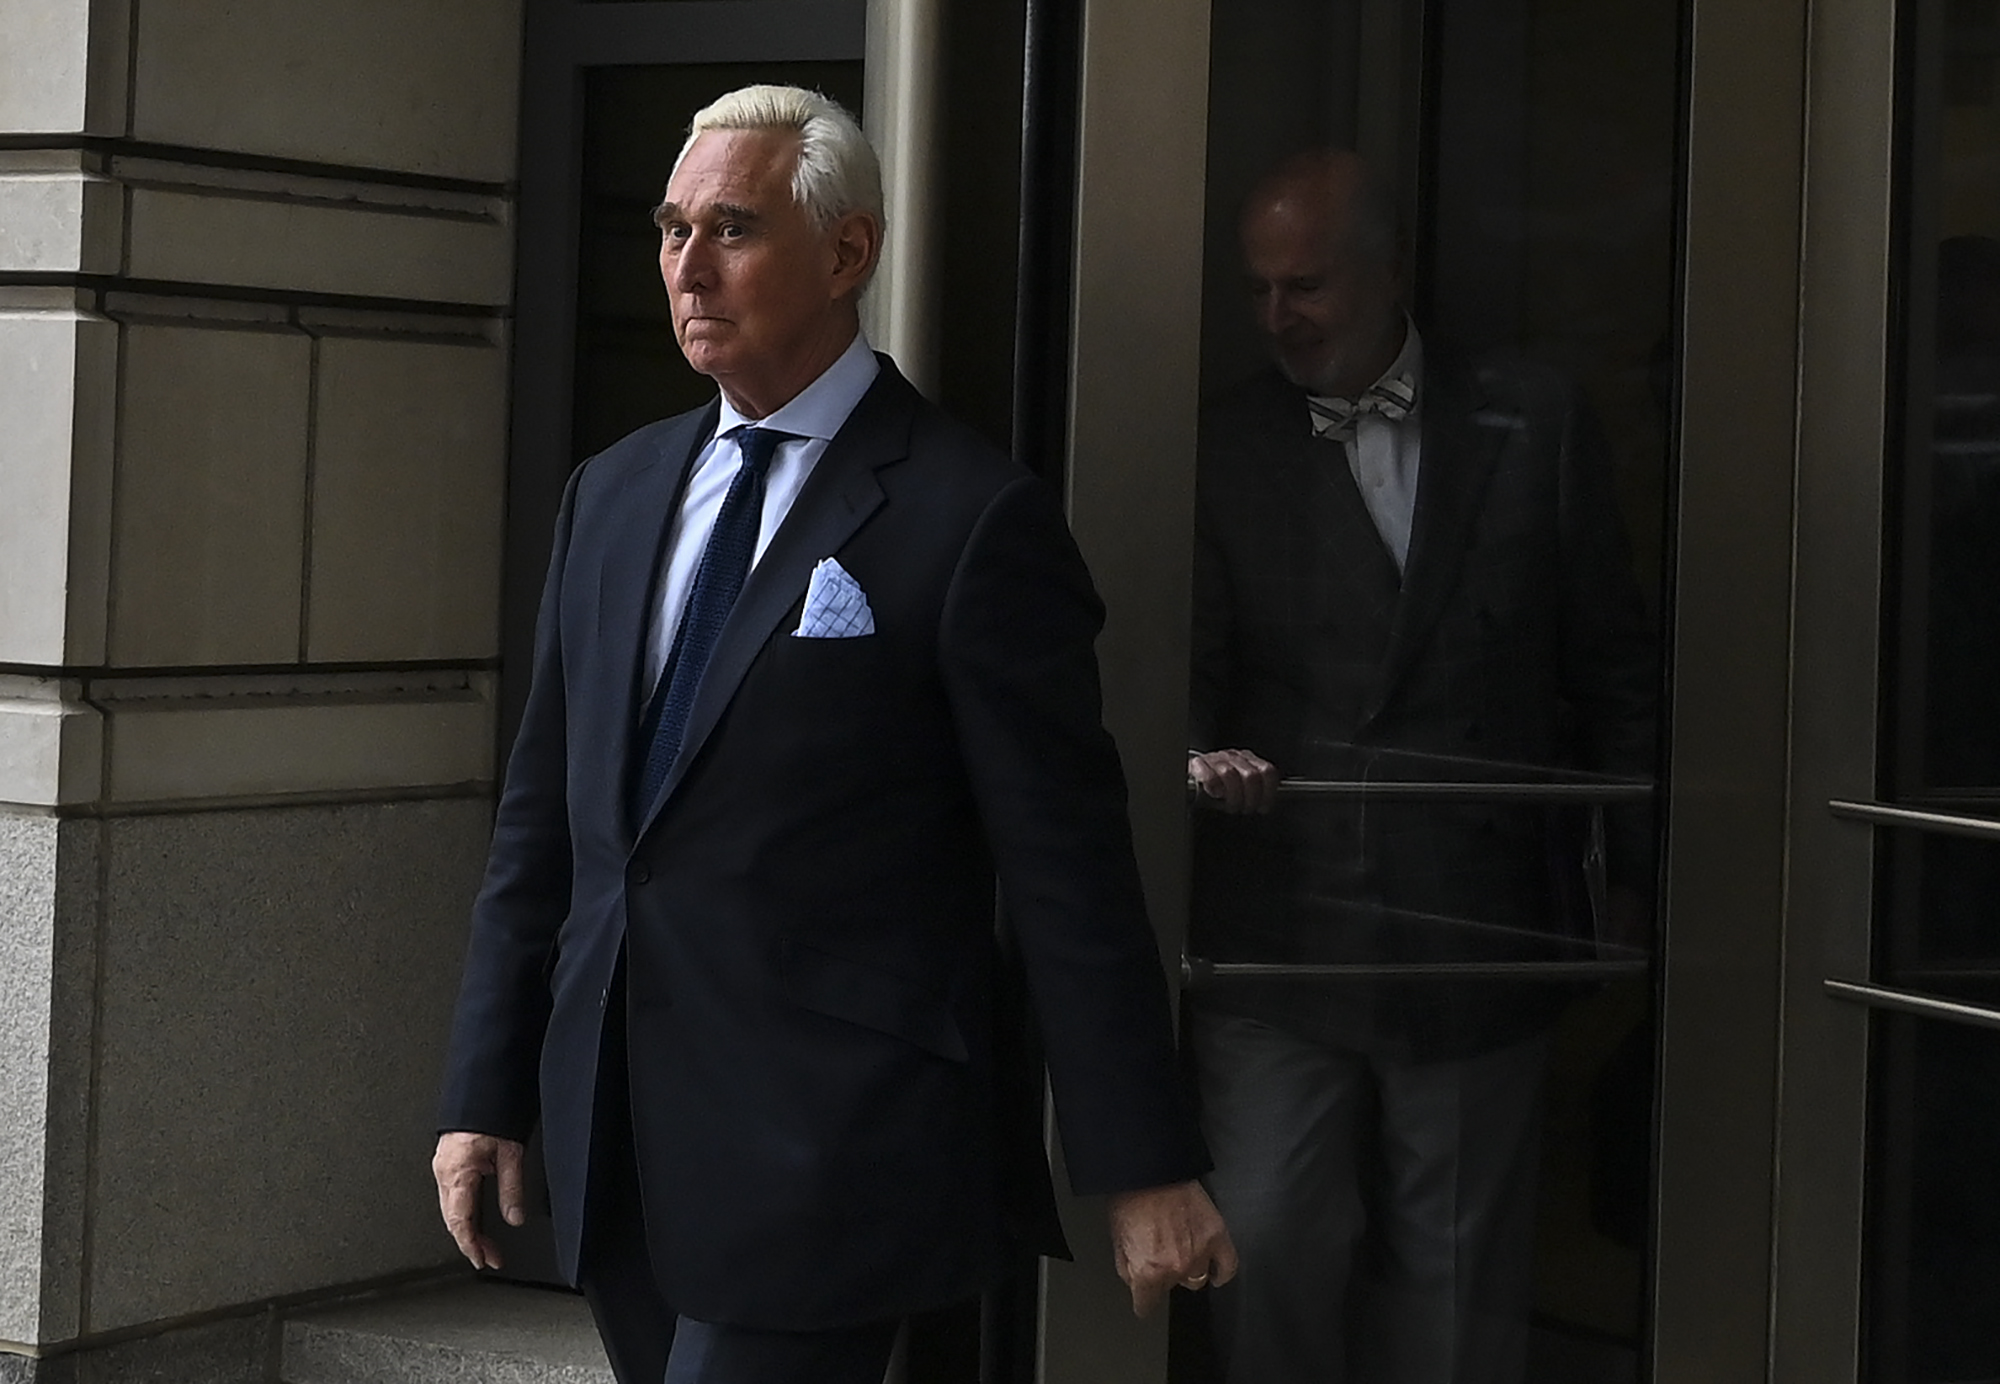 Roger Stone leaves after his arraignment, as part of the Robert Mueller probe, at the U.S. District courthouse in Washington Tuesday. Longtime Donald Trump advisor Stone pleaded not guilty on Tuesday to charges stemming from the ongoing investigation into whether the president's campaign colluded with Russia in the 2016 election. Stone, 66, is charged with lying to Congress, witness tampering and obstruction in relation to his contacts with WikiLeaks, whose publication of embarrassing Russian-hacked communications from Democrat Hillary Clinton's campaign gave a boost to Trump. | AFP-JIJI